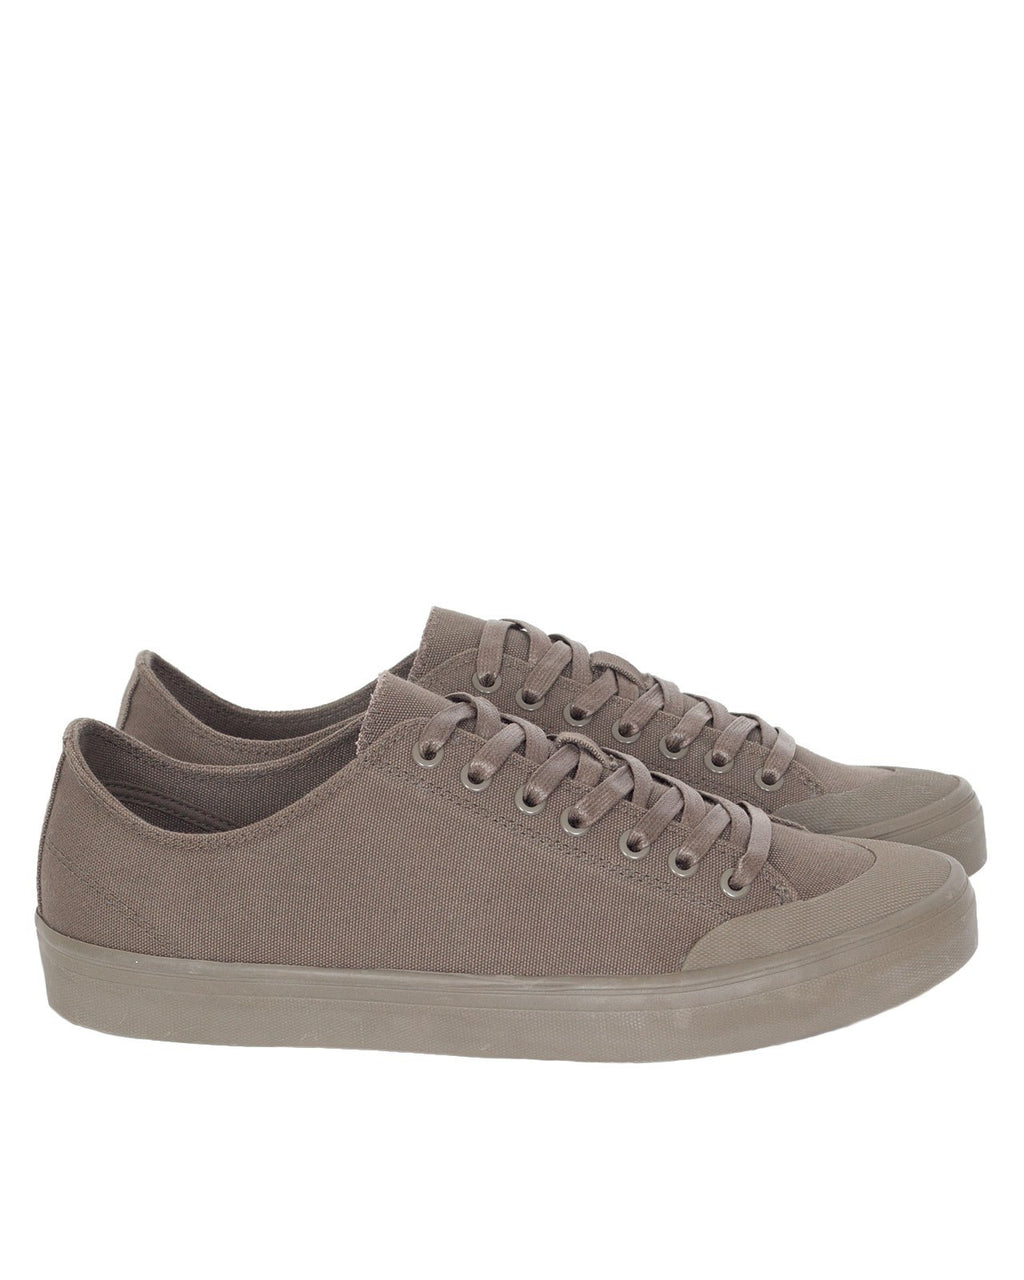 Erik Schedin Canvas Sneaker, Surplus Green